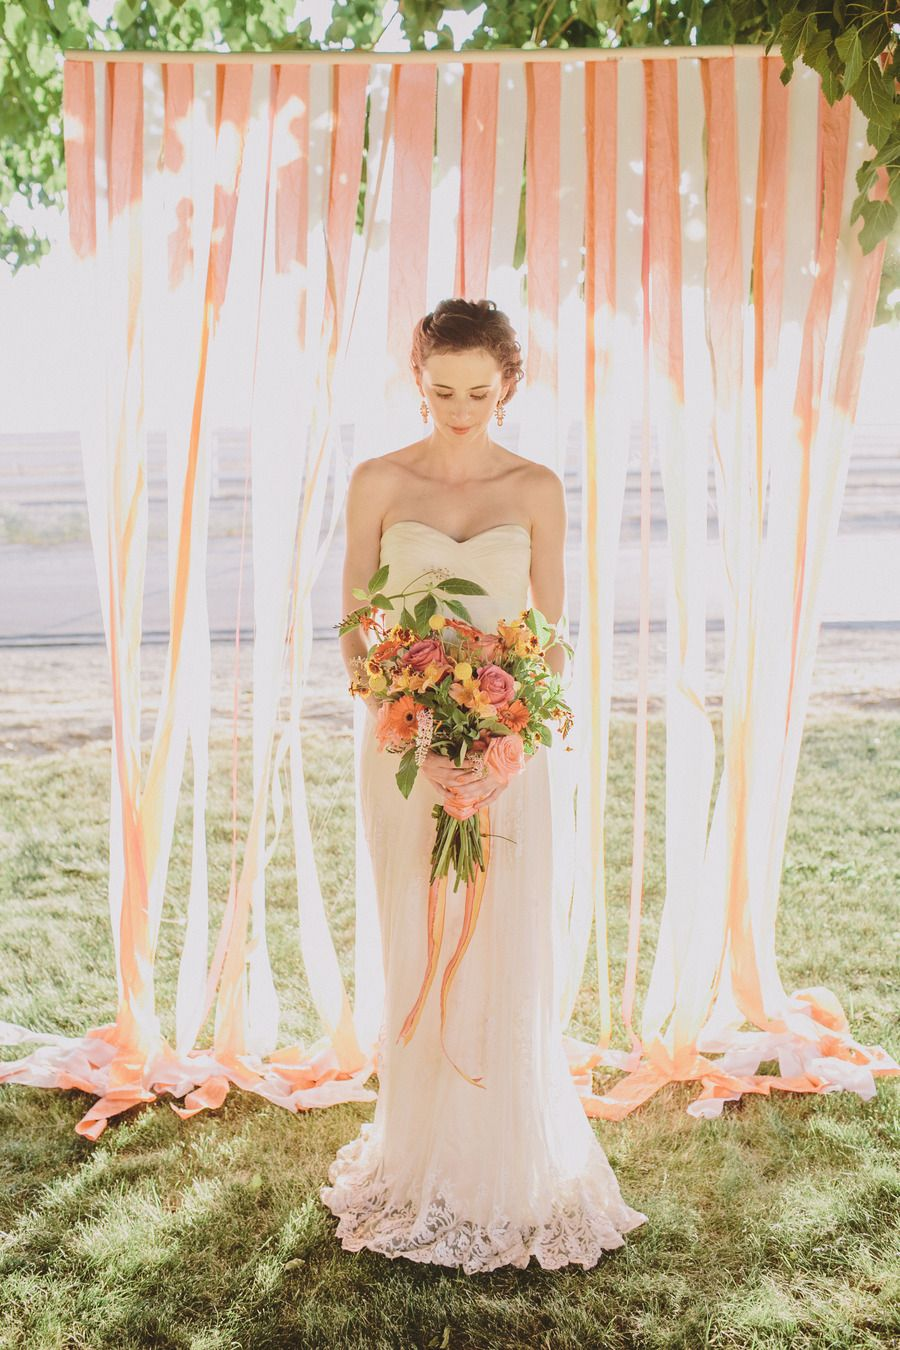 Citrus Inspired Photo Shoot from Anna Delores Photography